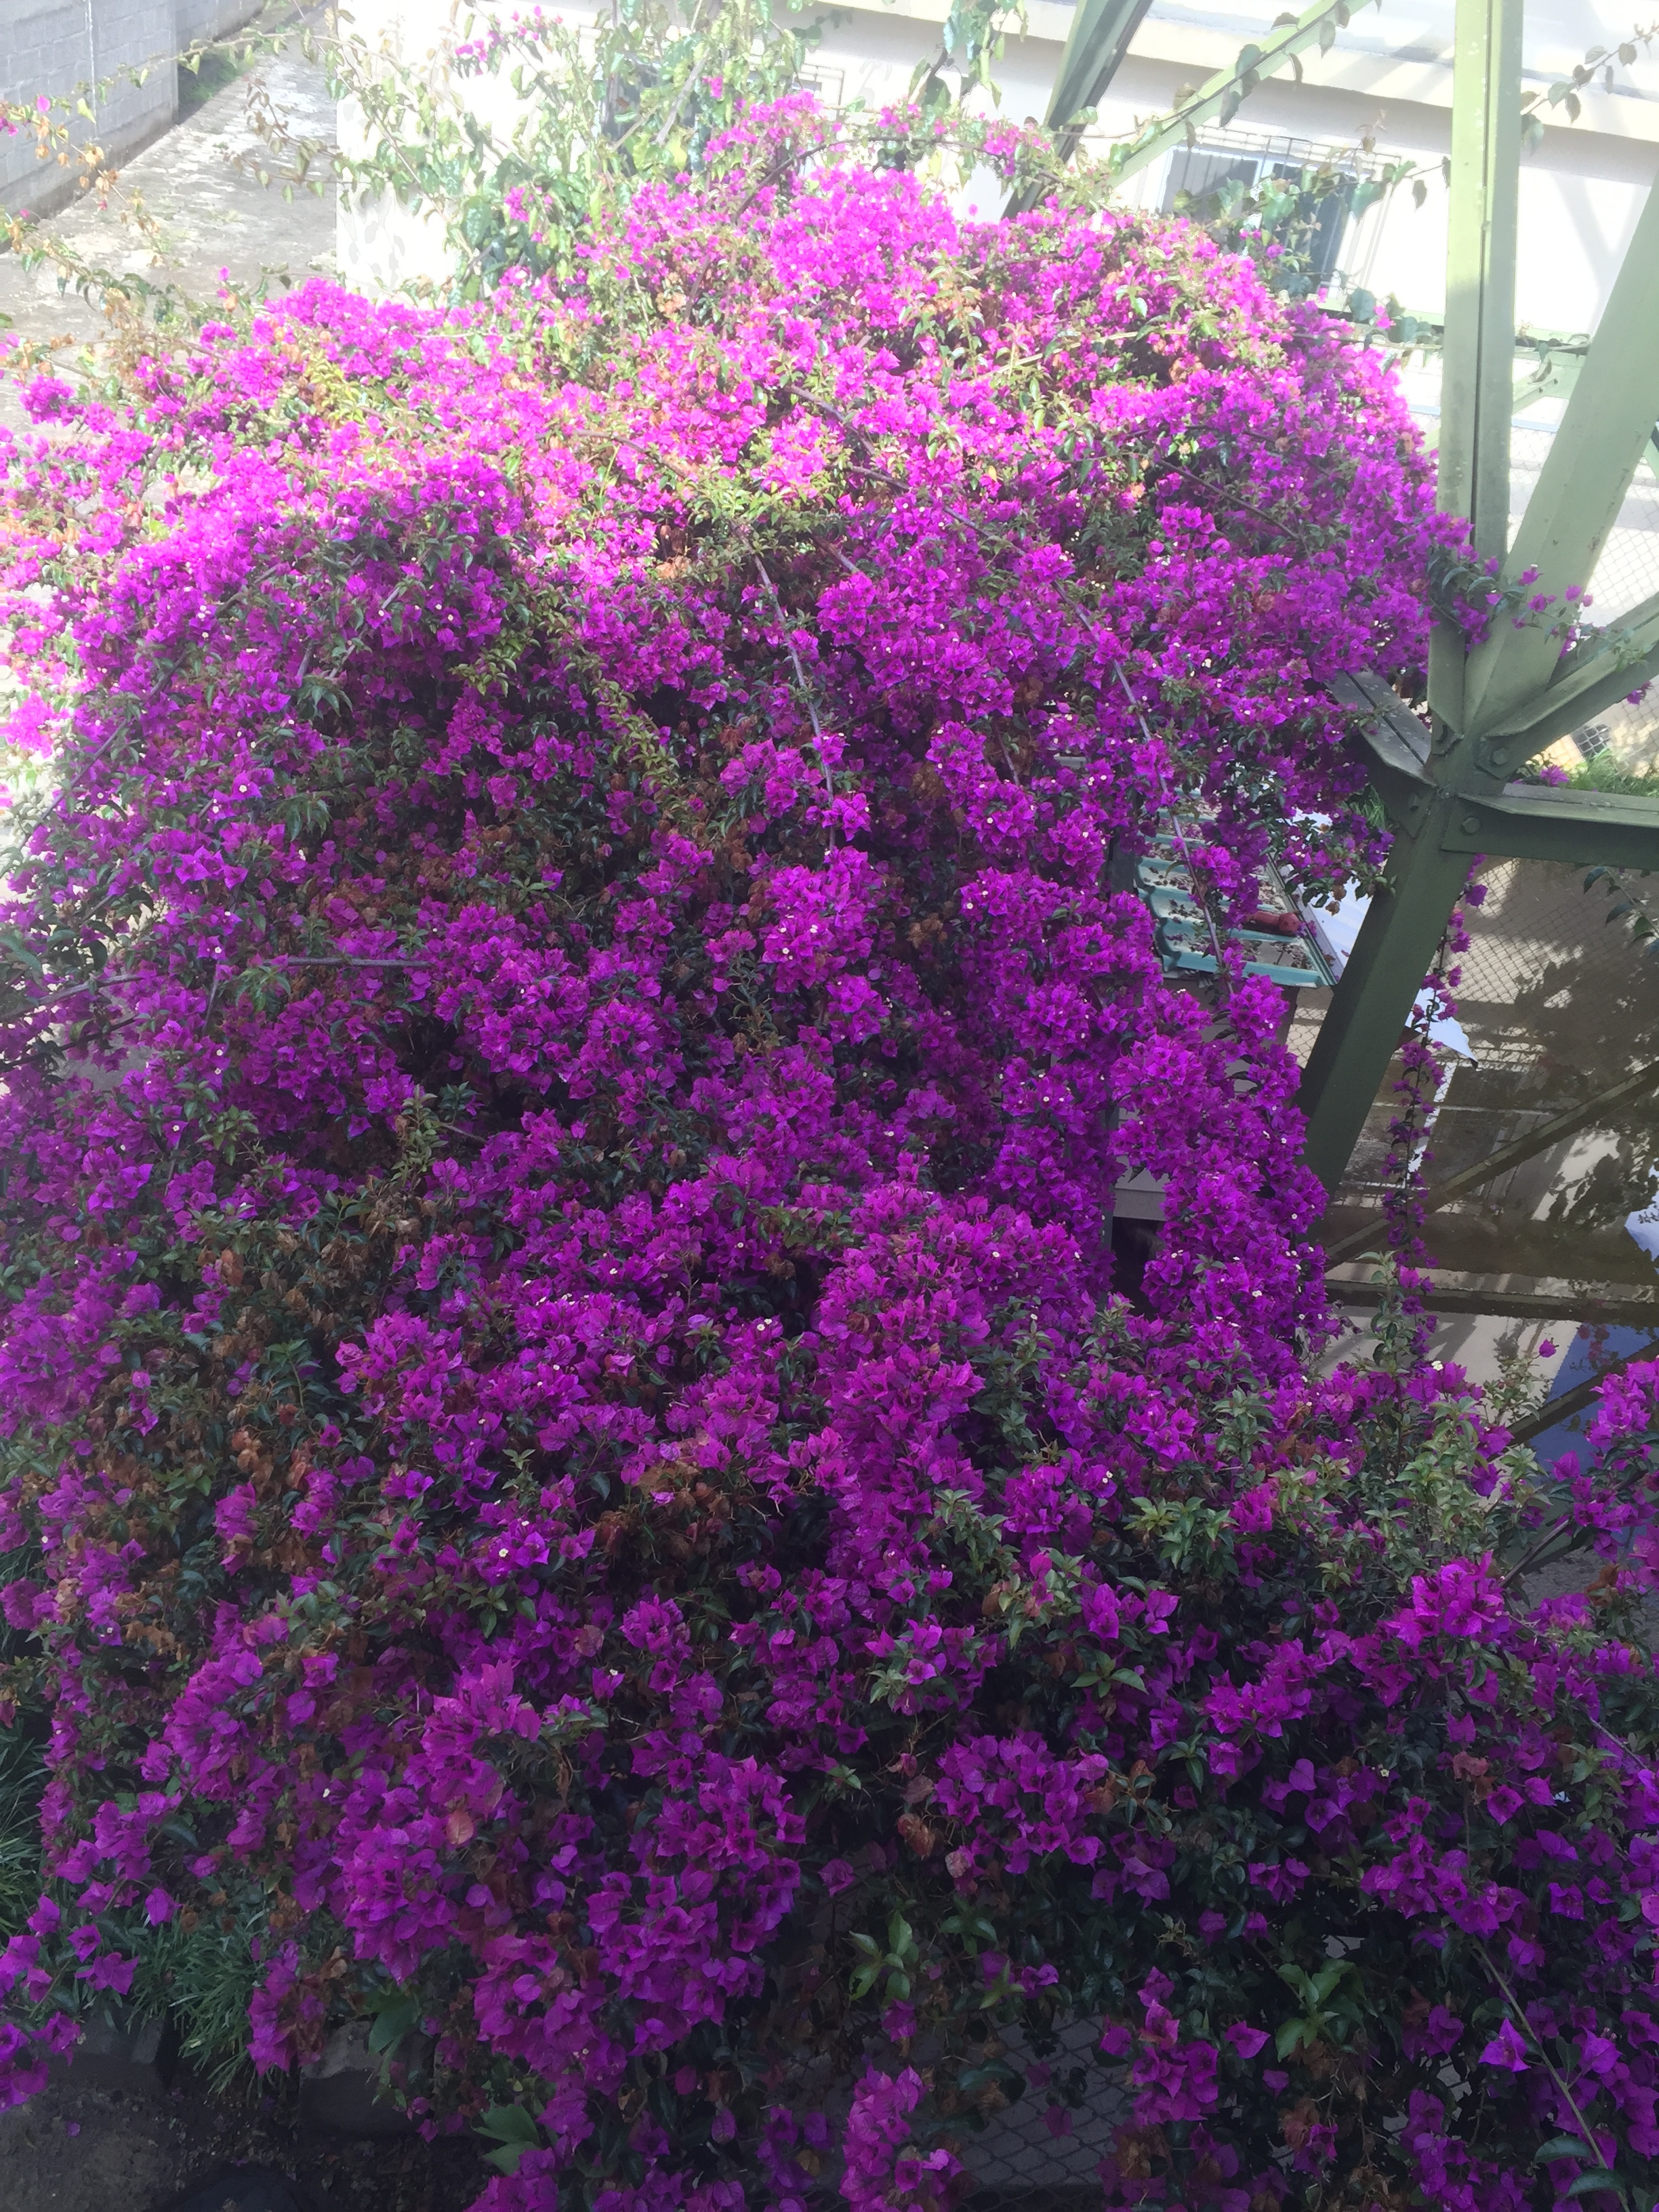 bougainvilleas: photo from 2nd floor of my house